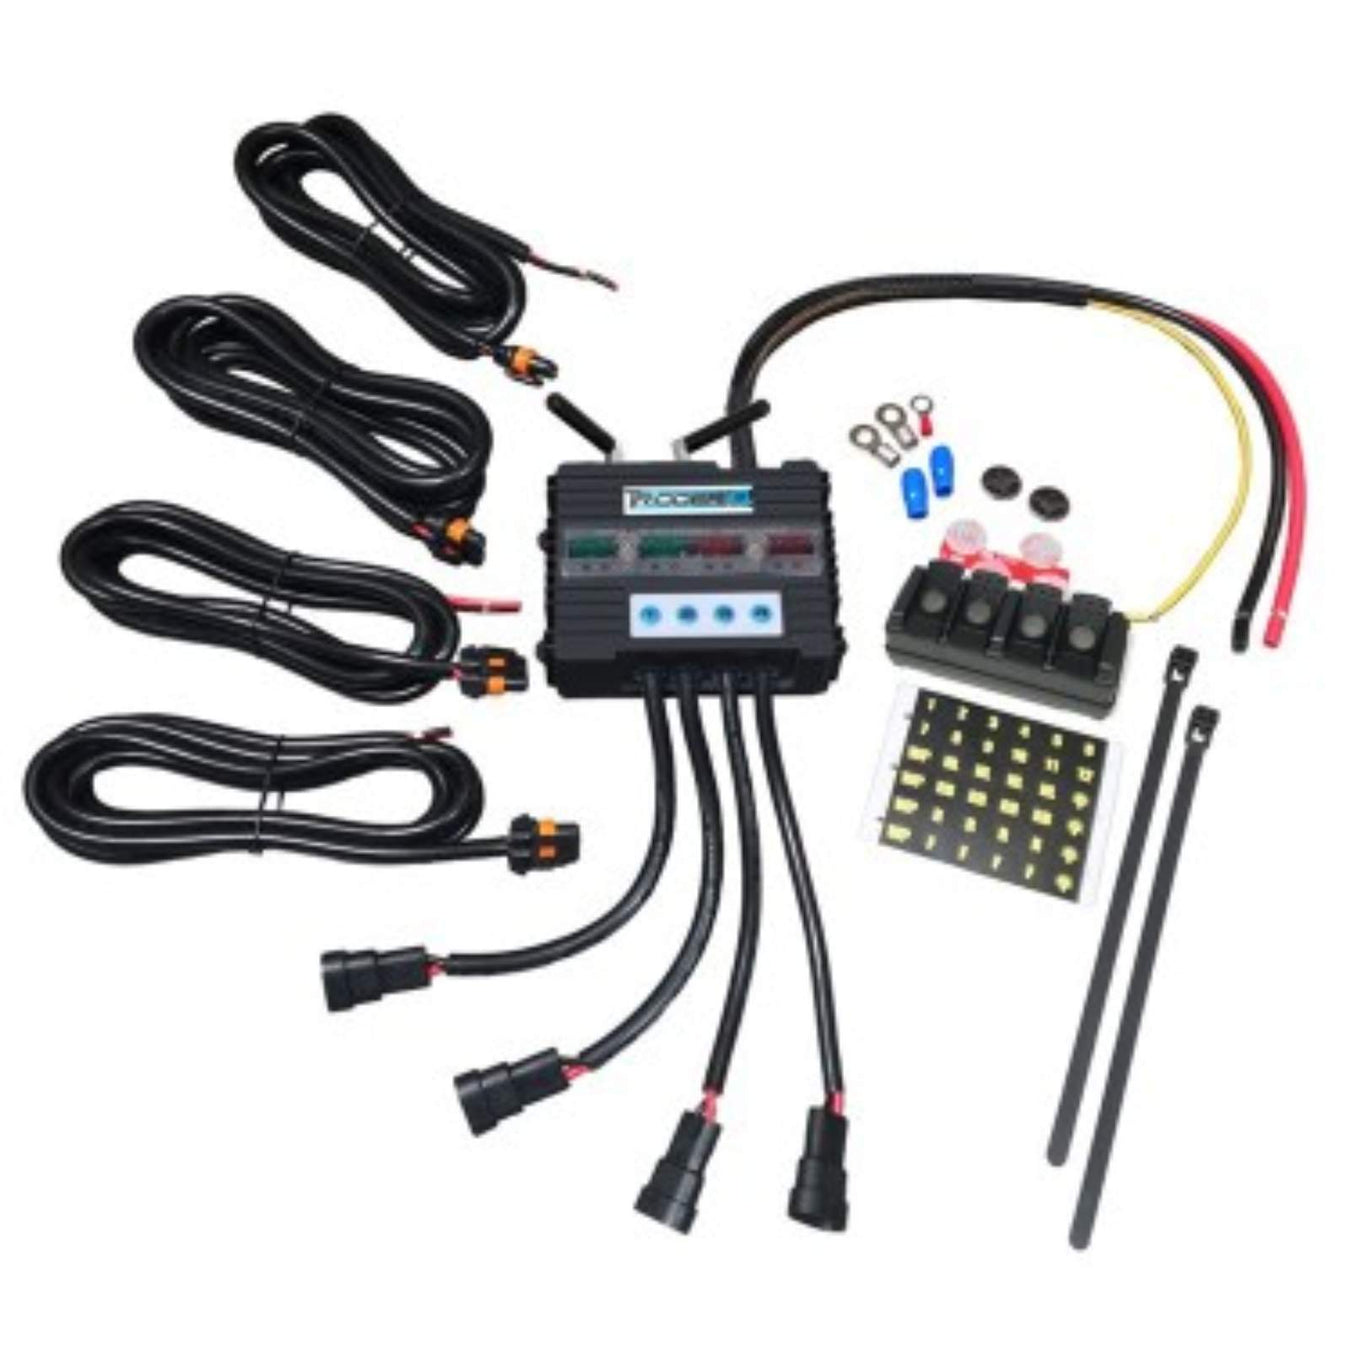 Accessory Control Systems